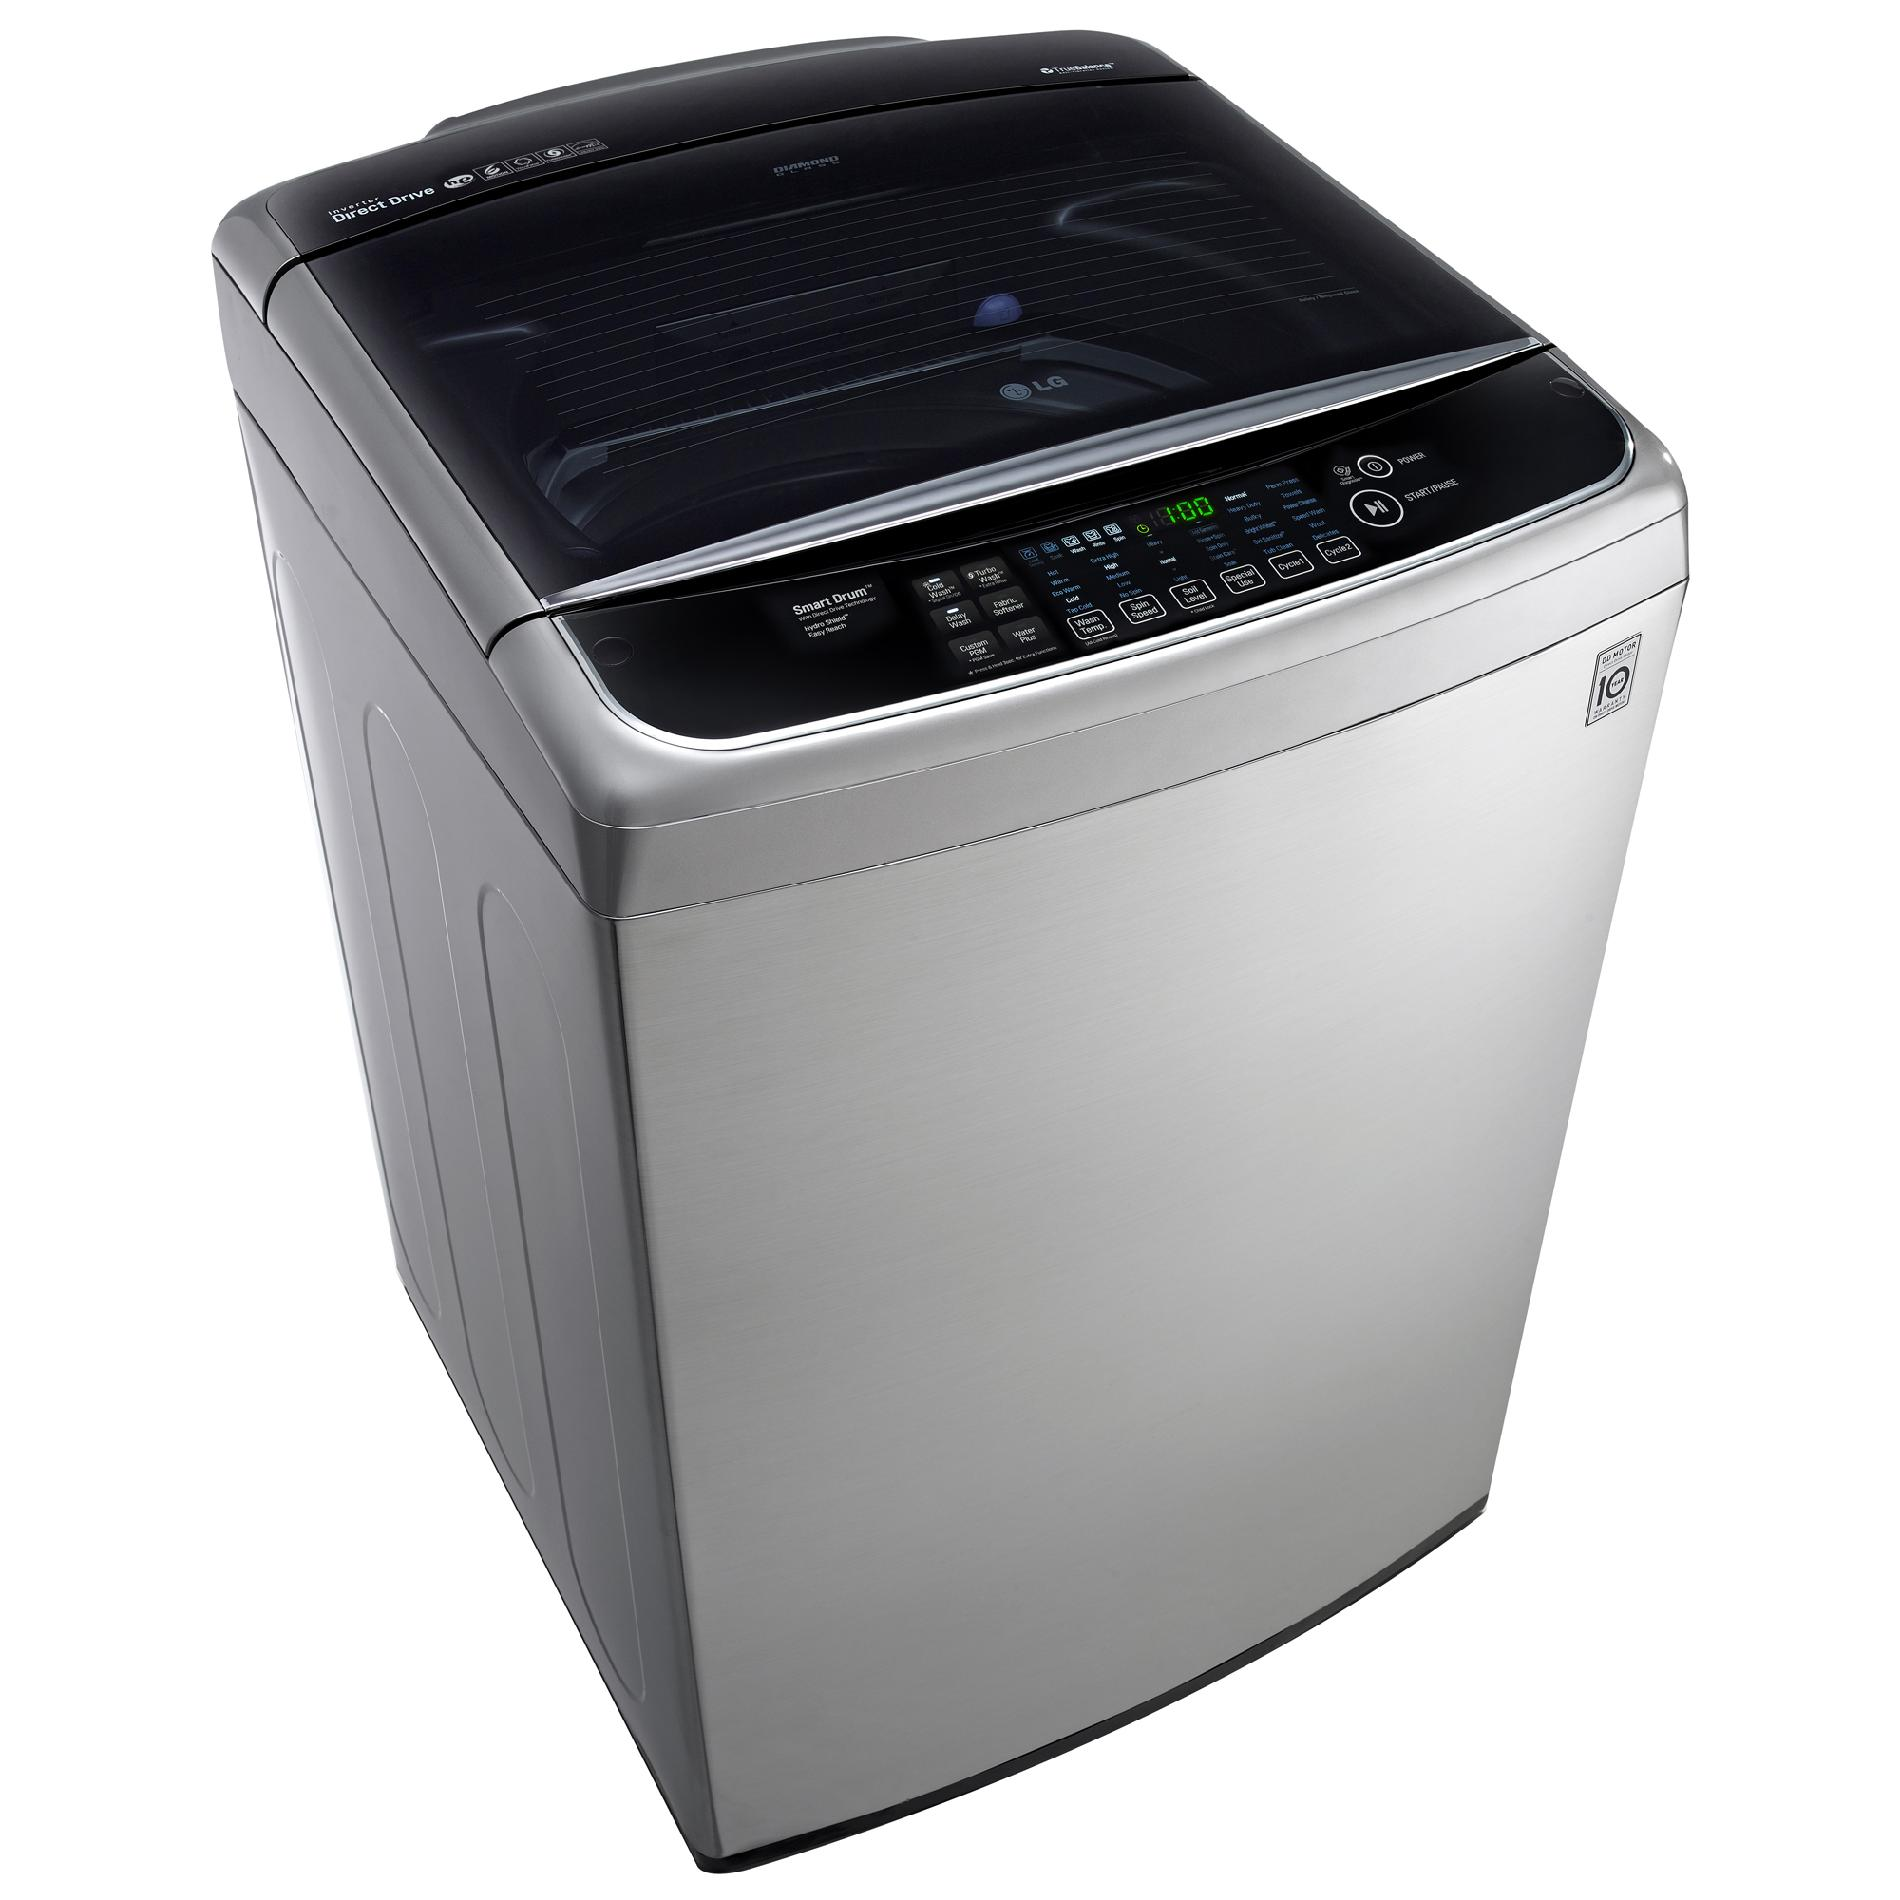 LG 5.0 cu. ft. High-Efficiency Top-Load Washer w/ TurboWash™